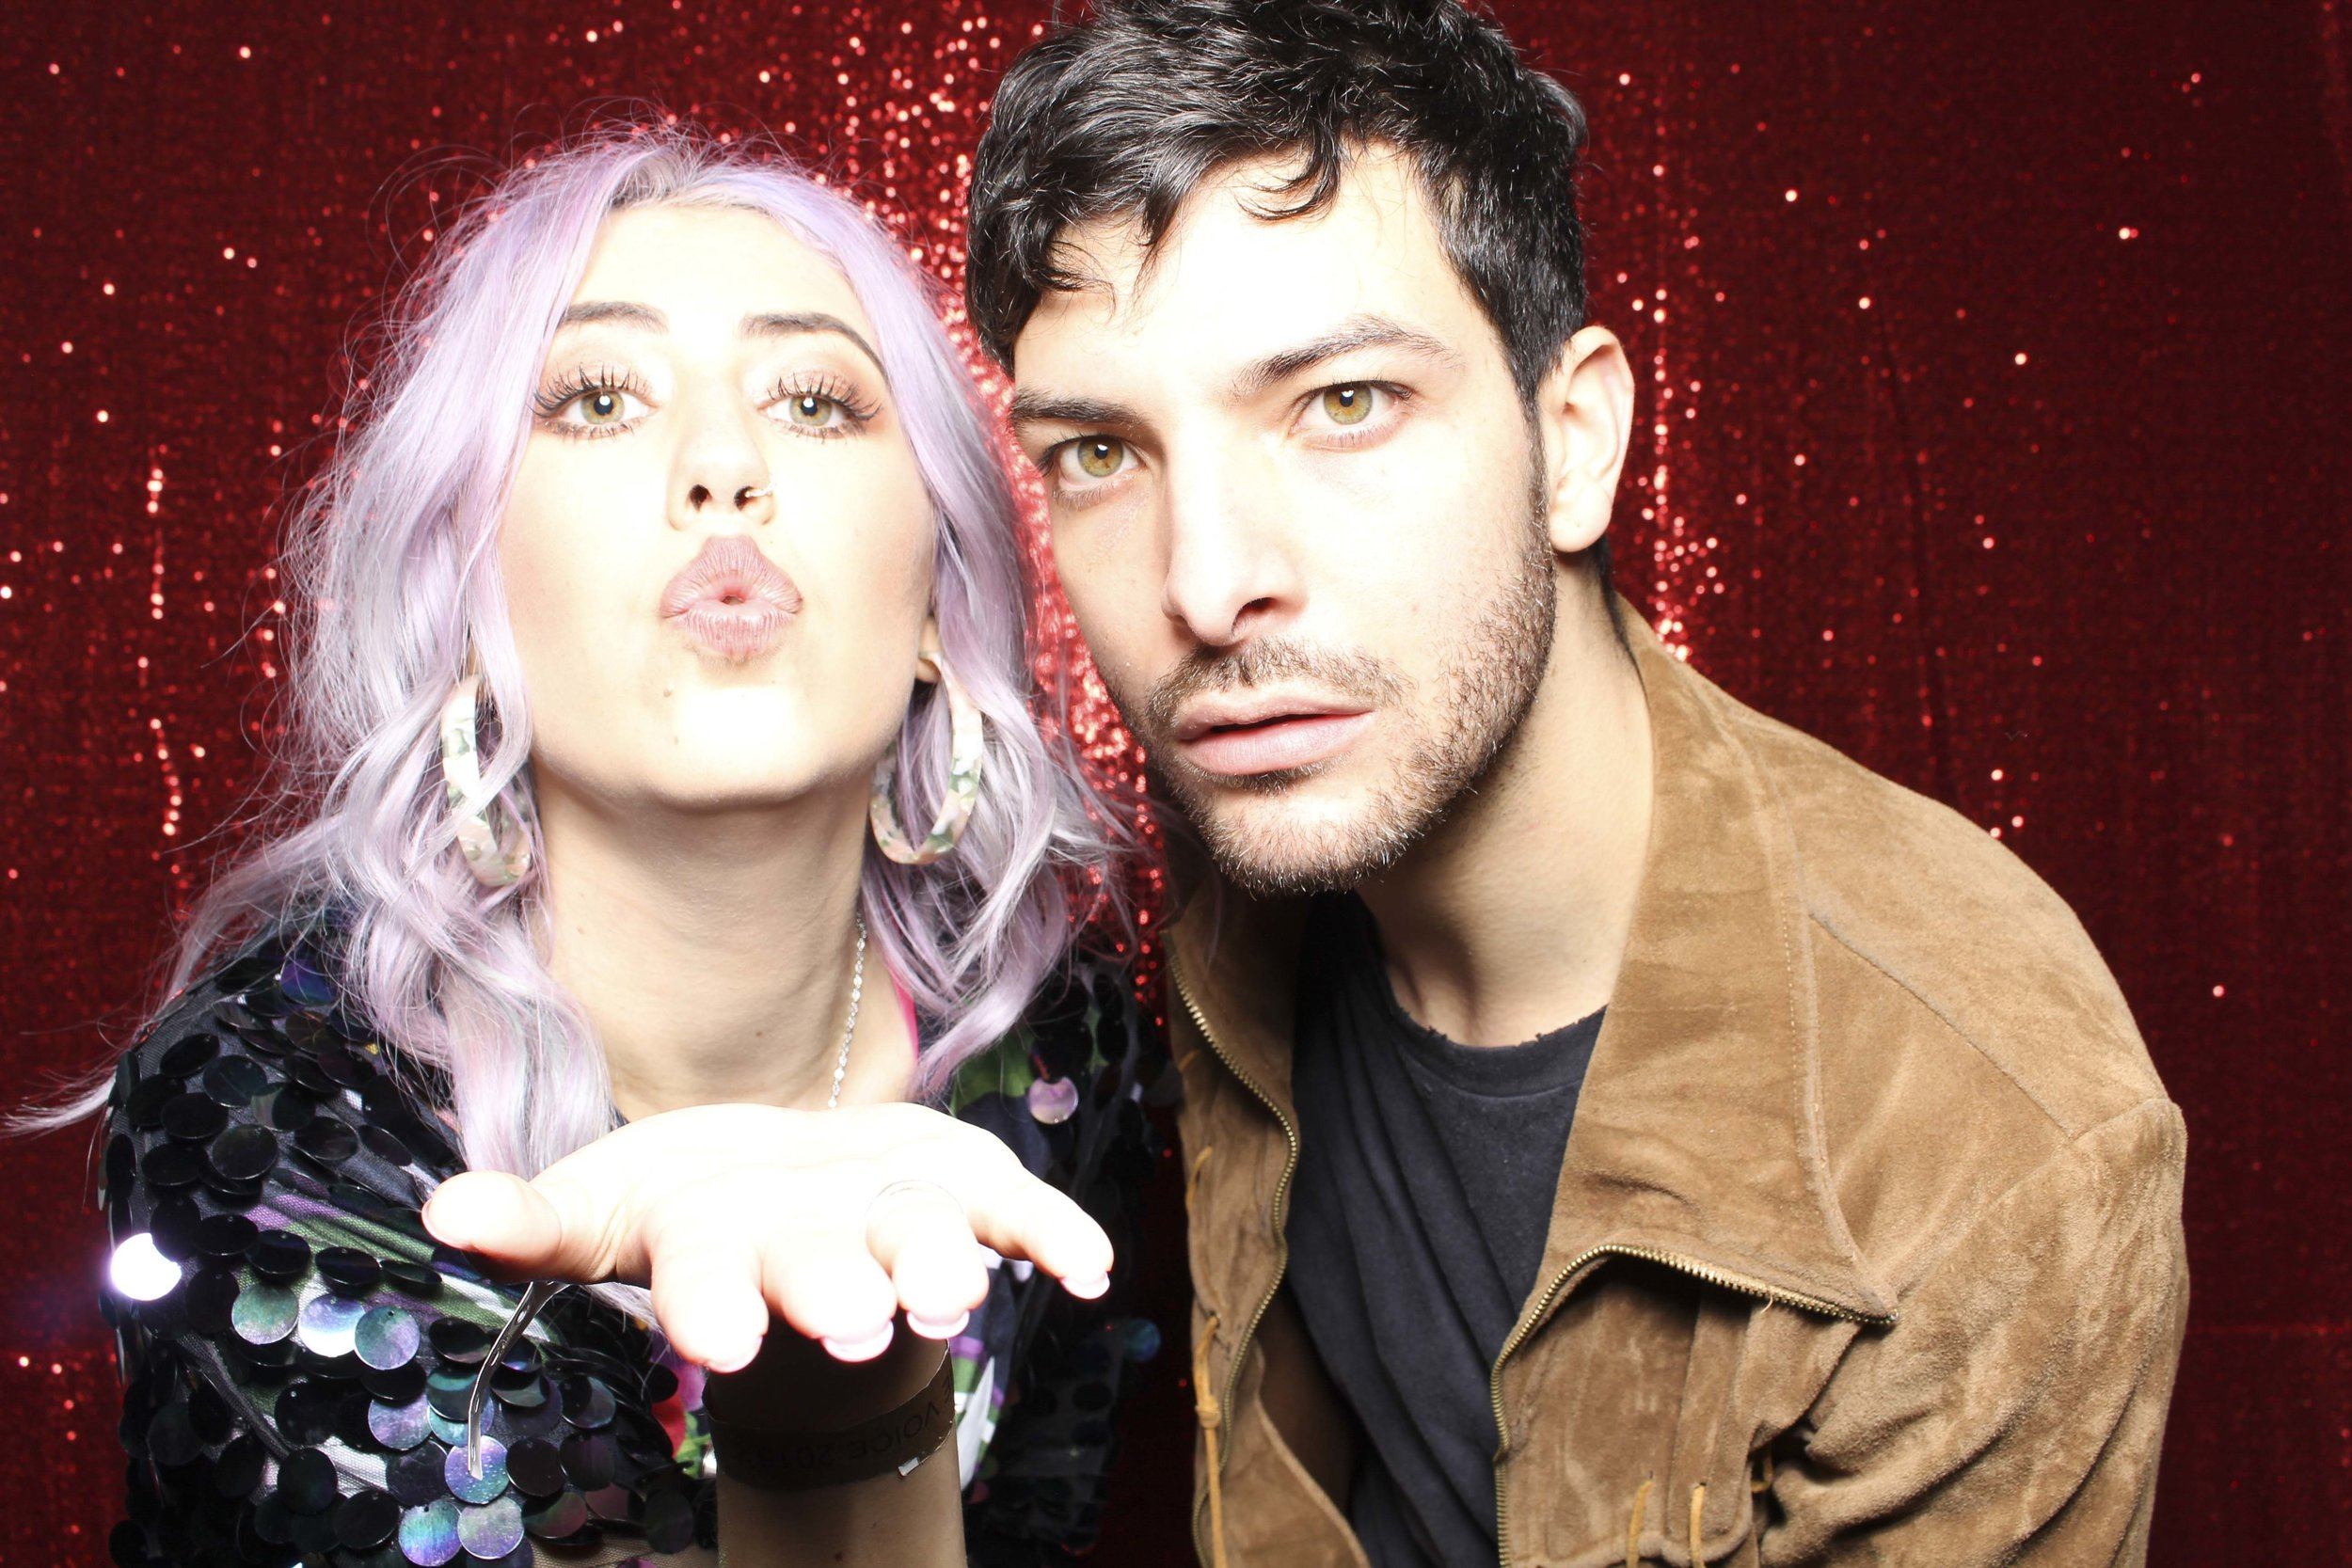 photo booth hire sydney backdrop red sequin003.jpg